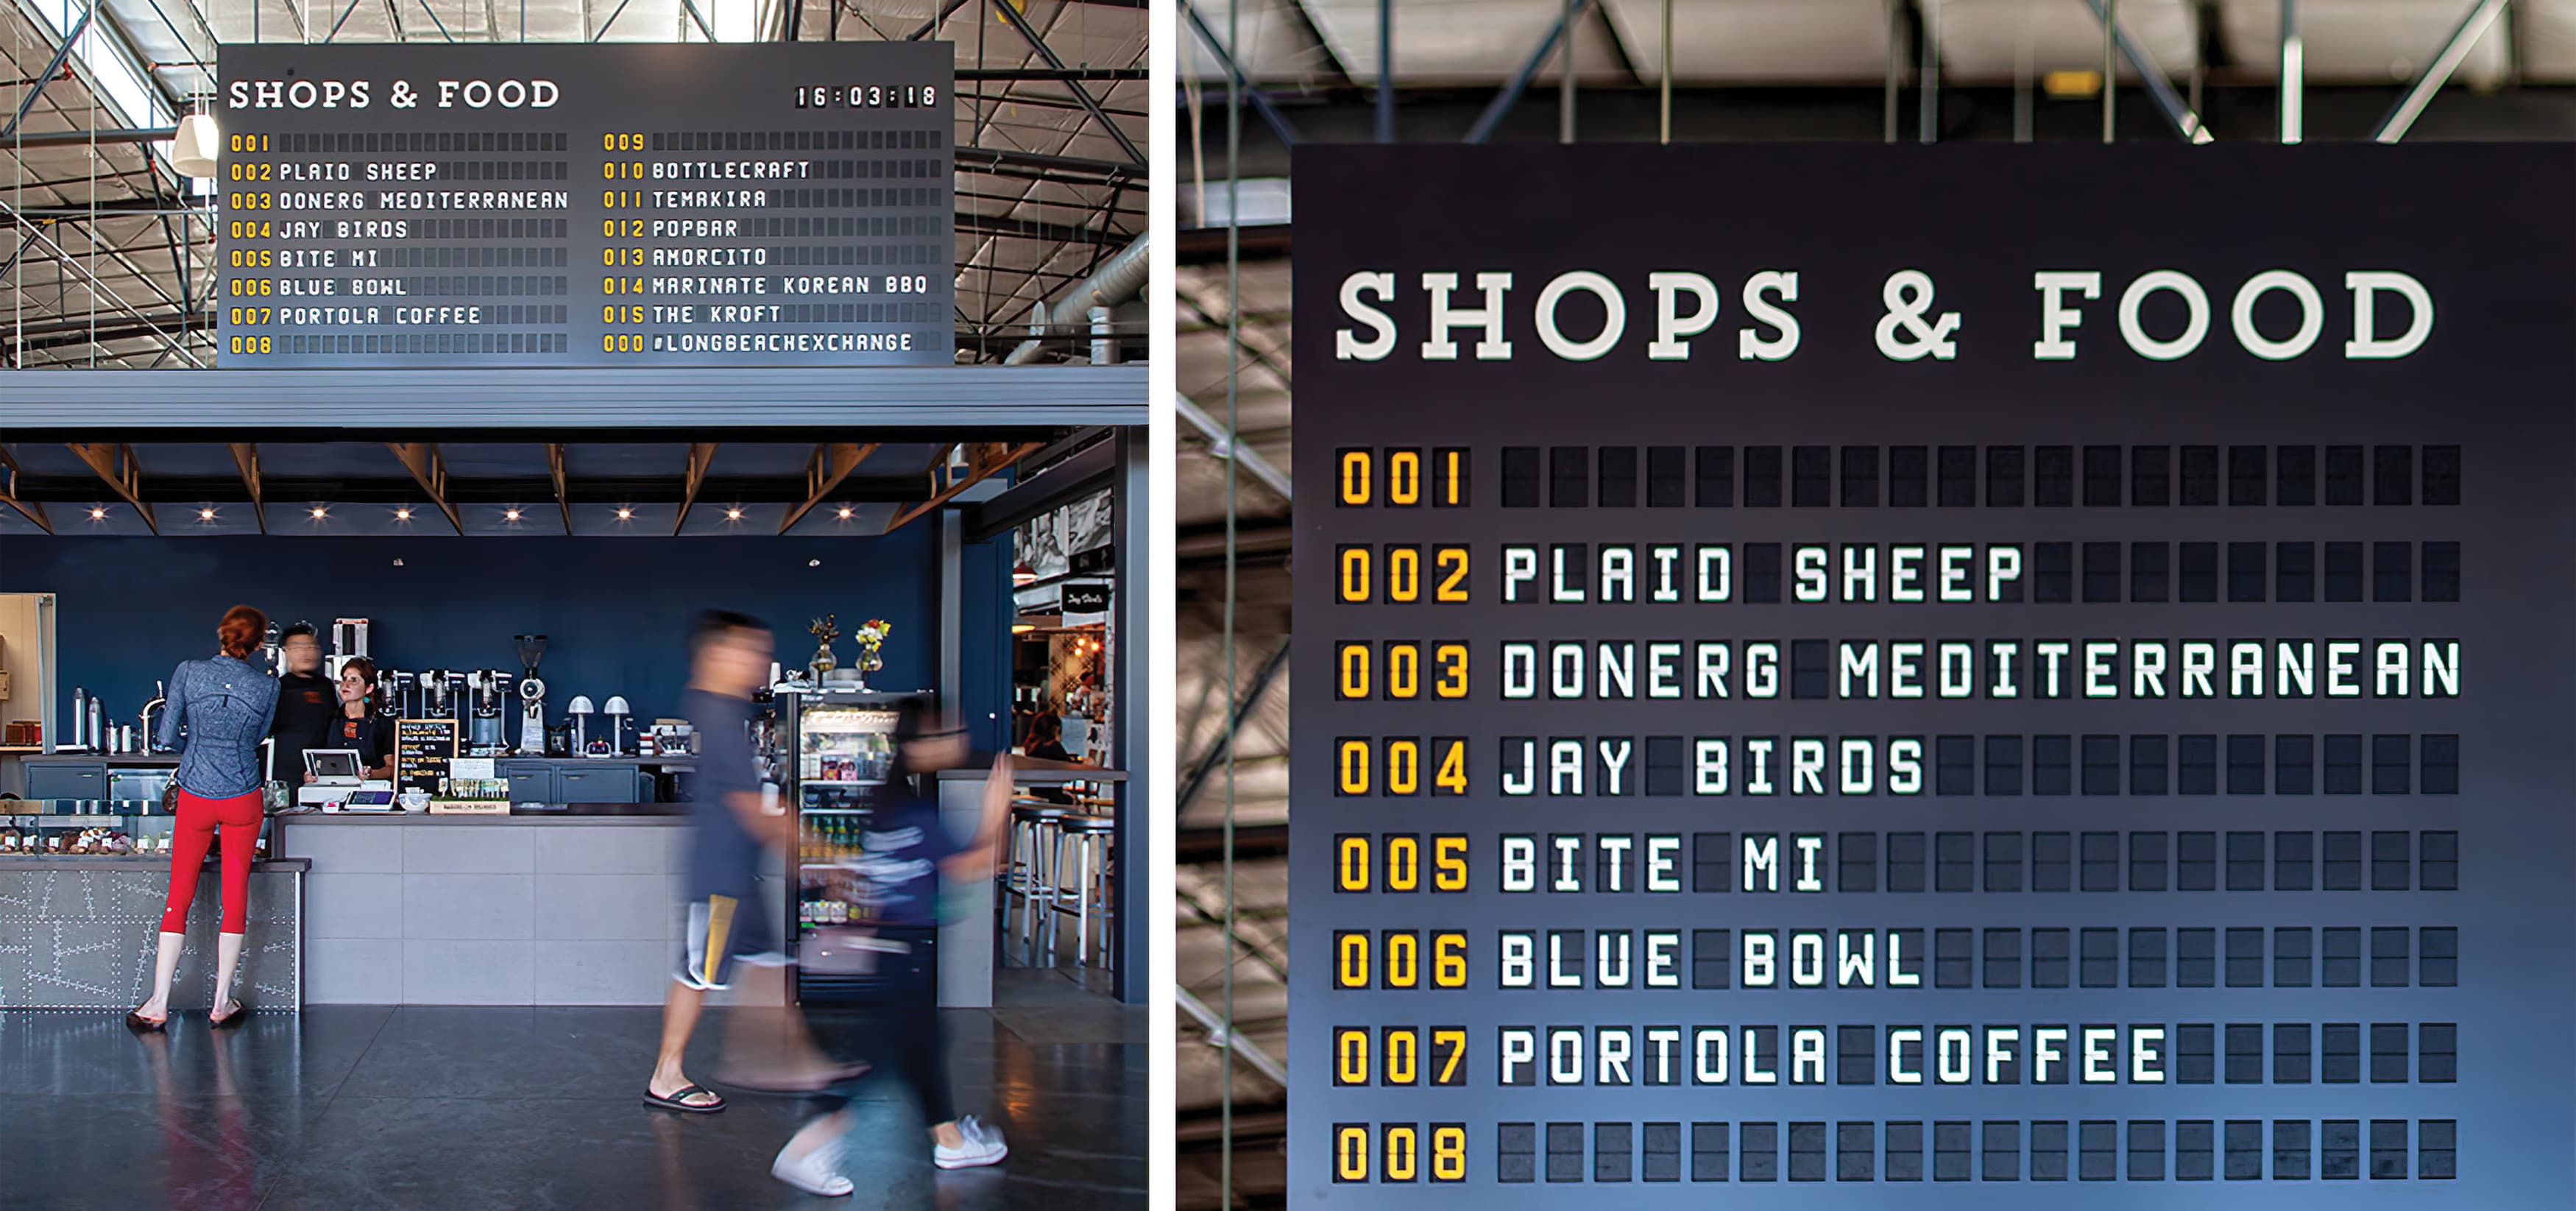 The Hangar, a food hall dining complex at Long Beach Exchange.  Menu Signage.